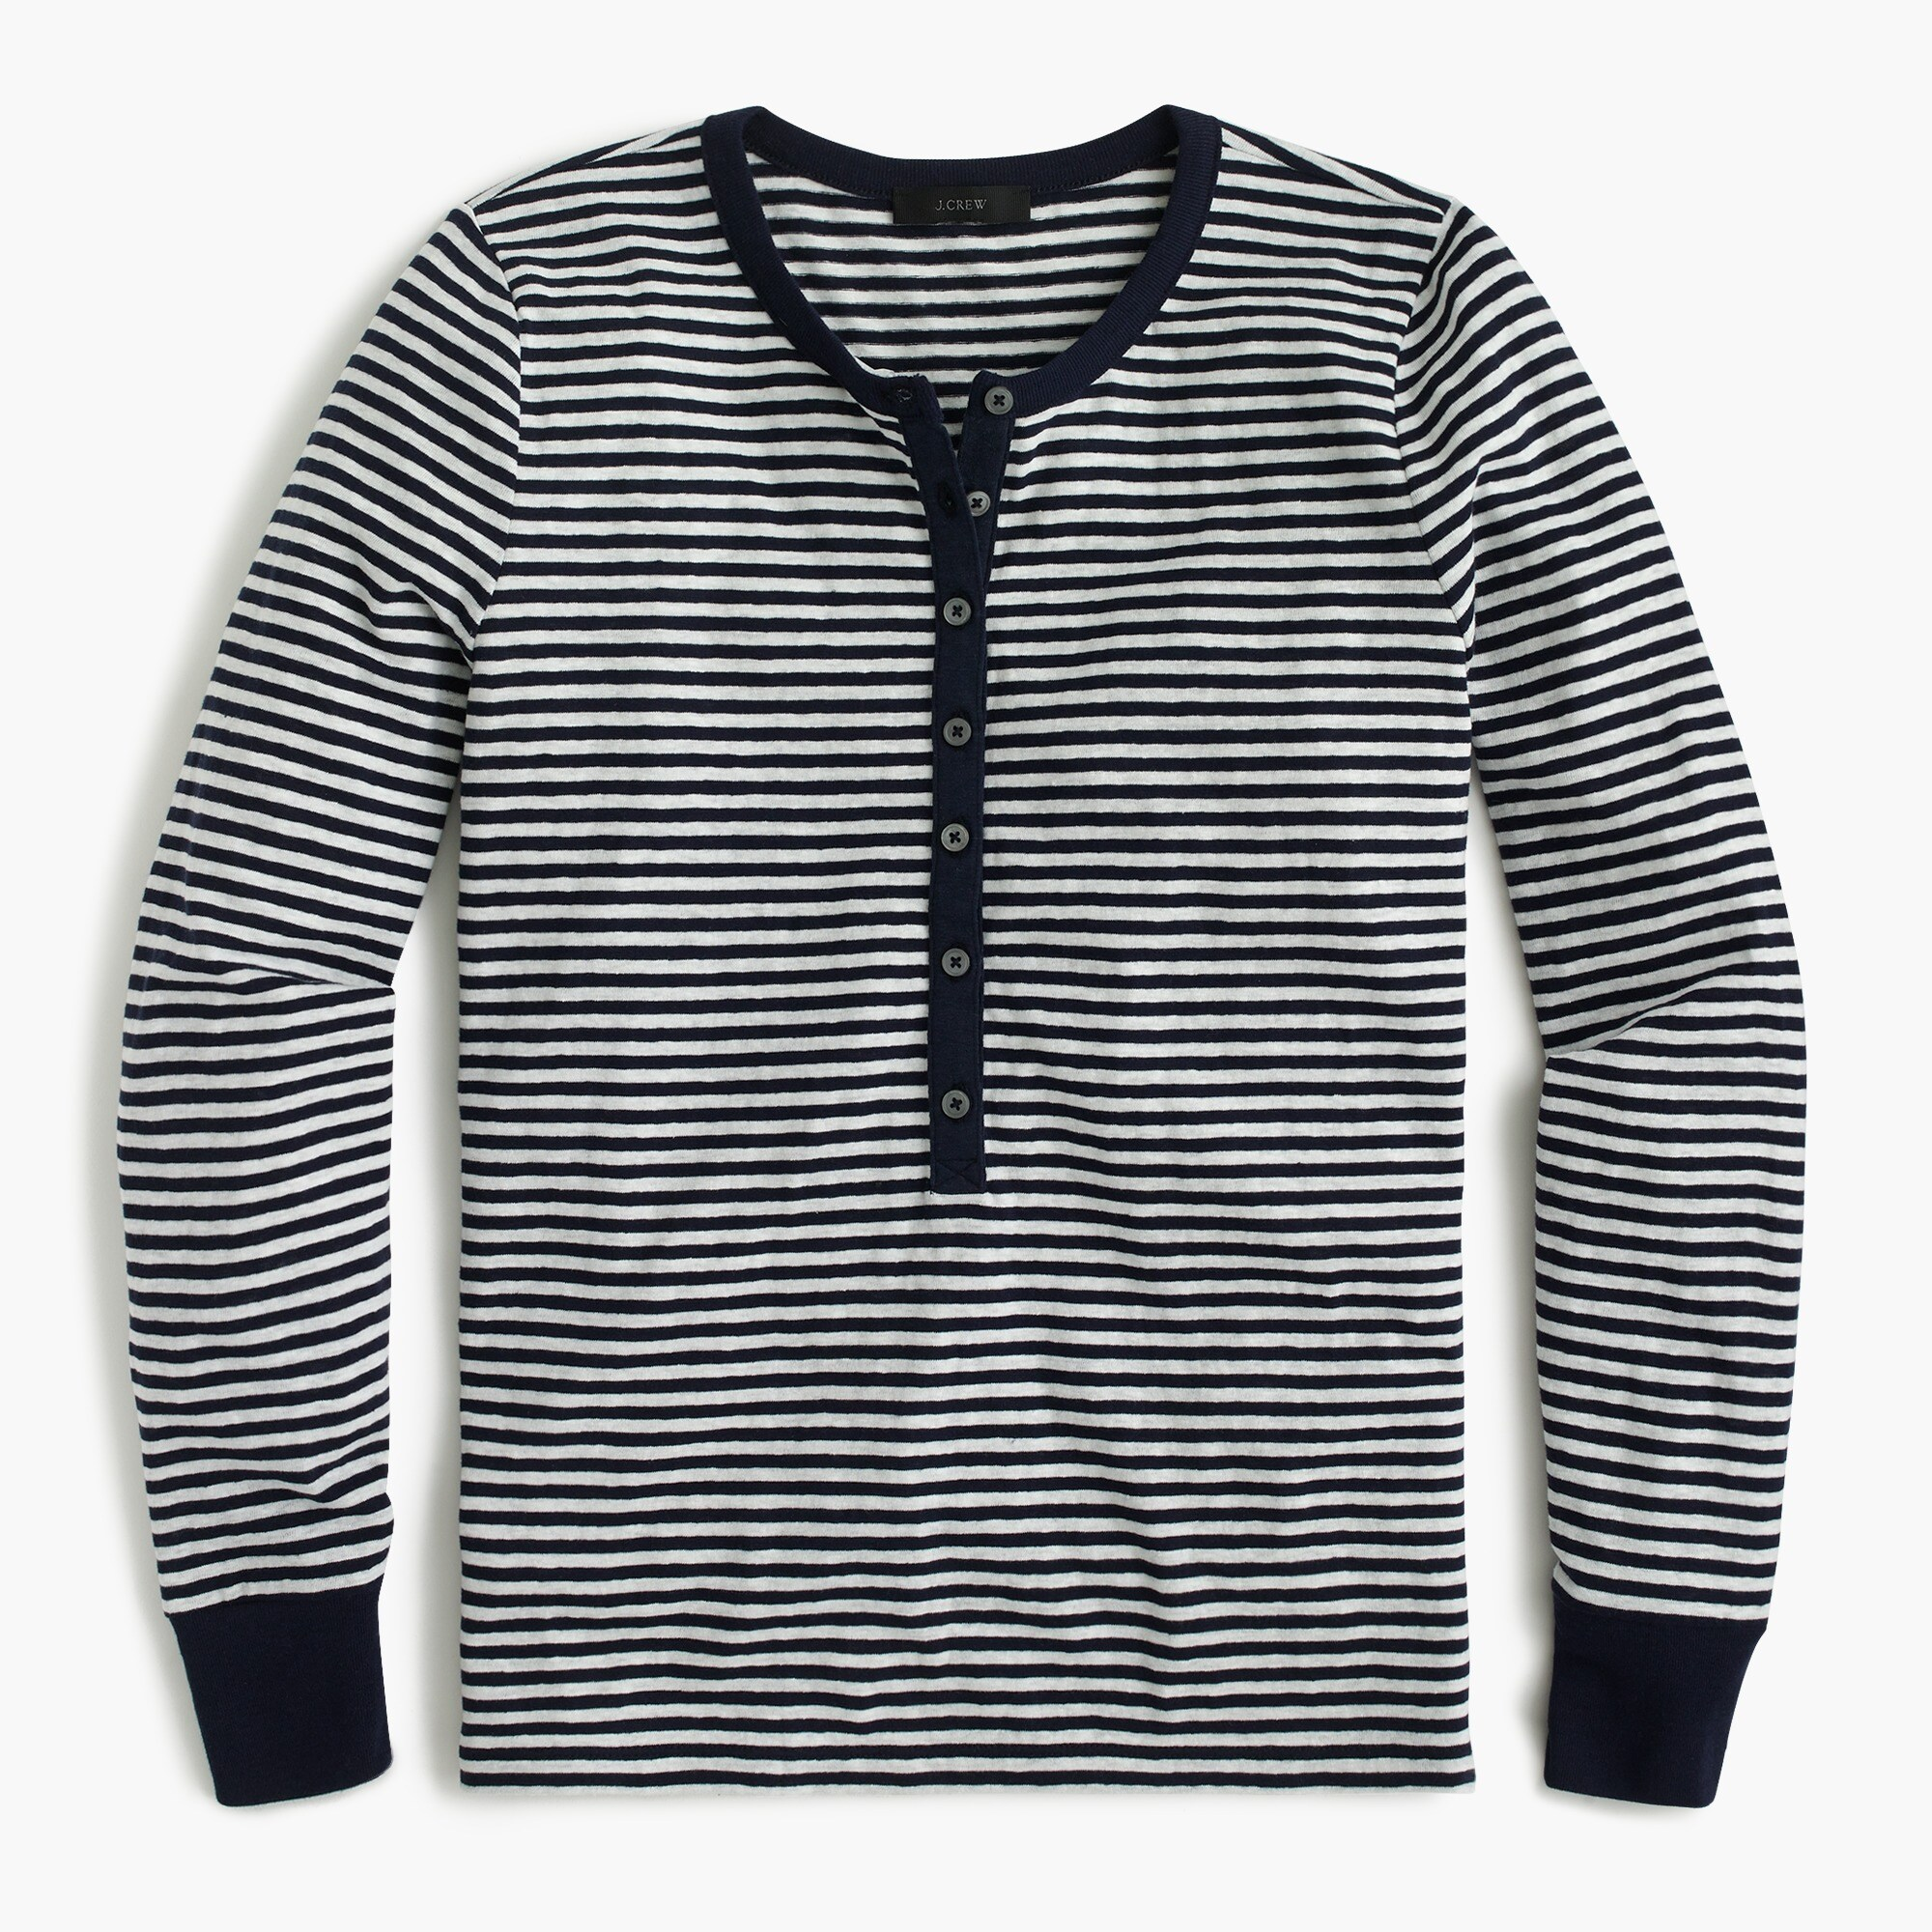 women's striped henley t-shirt - women's knits